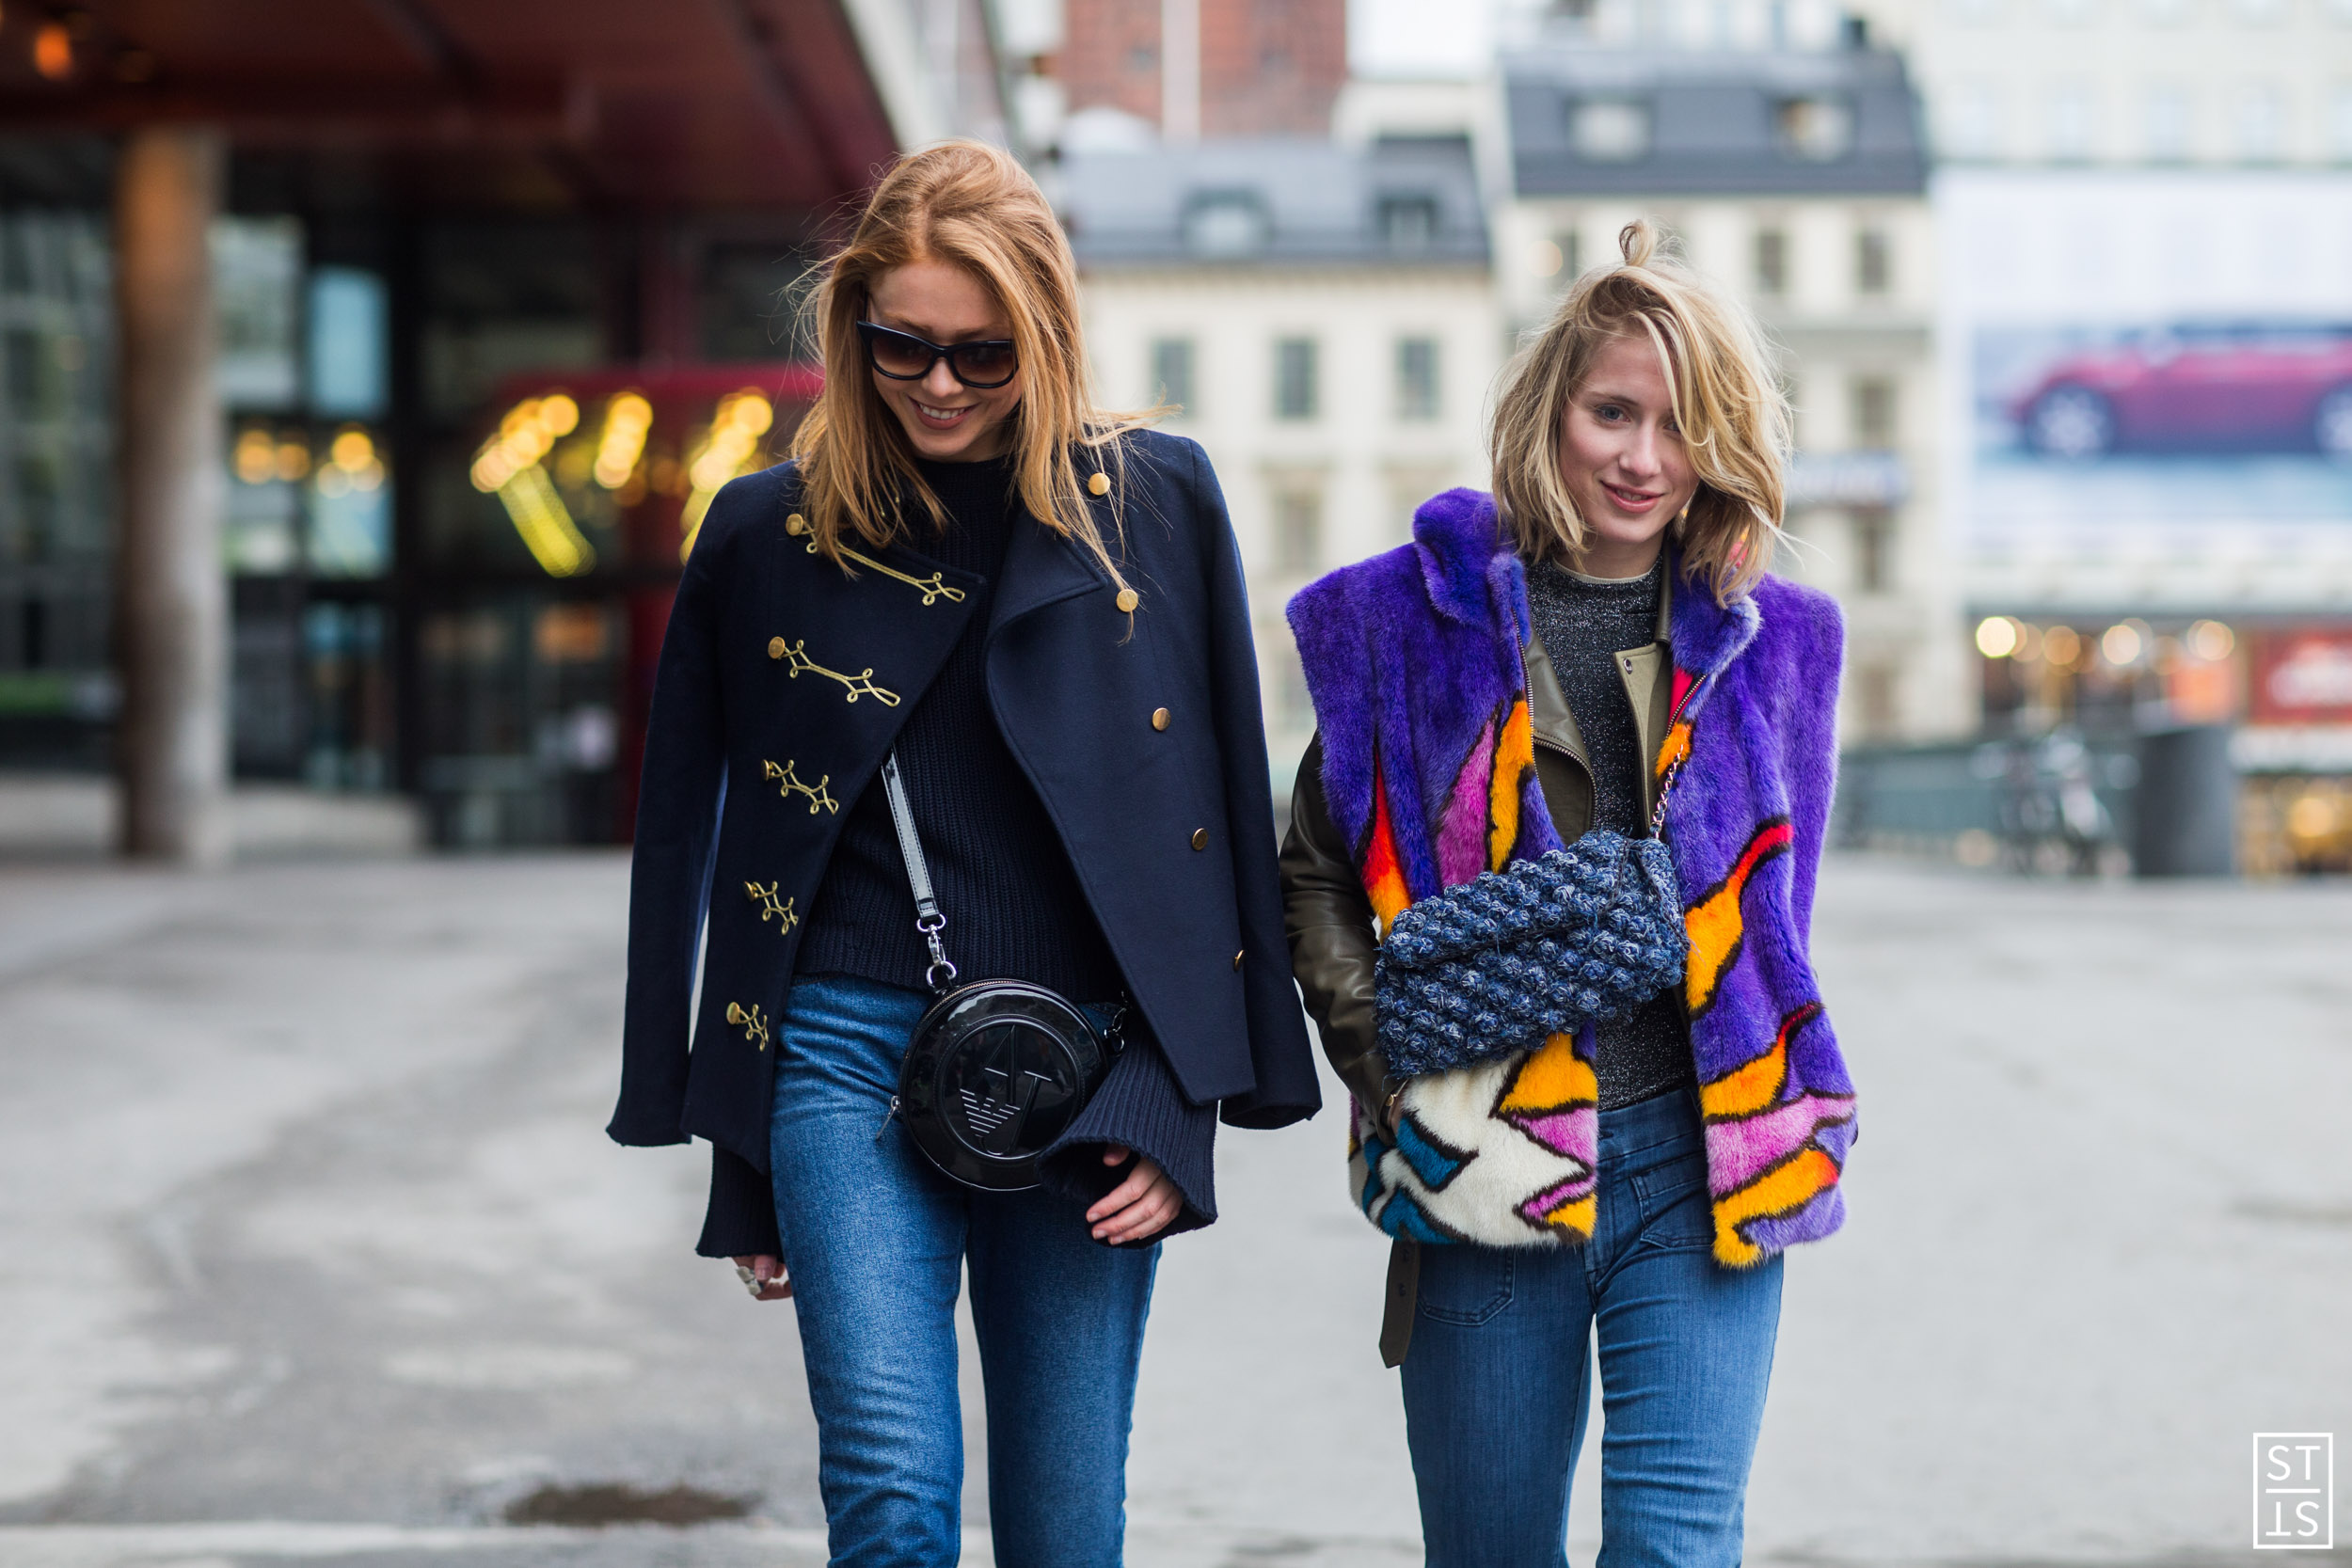 Photo: IMAXtree Street Style during Stockholm Fashion Week AW 16 Laura Tønder, Maria Just Jernov